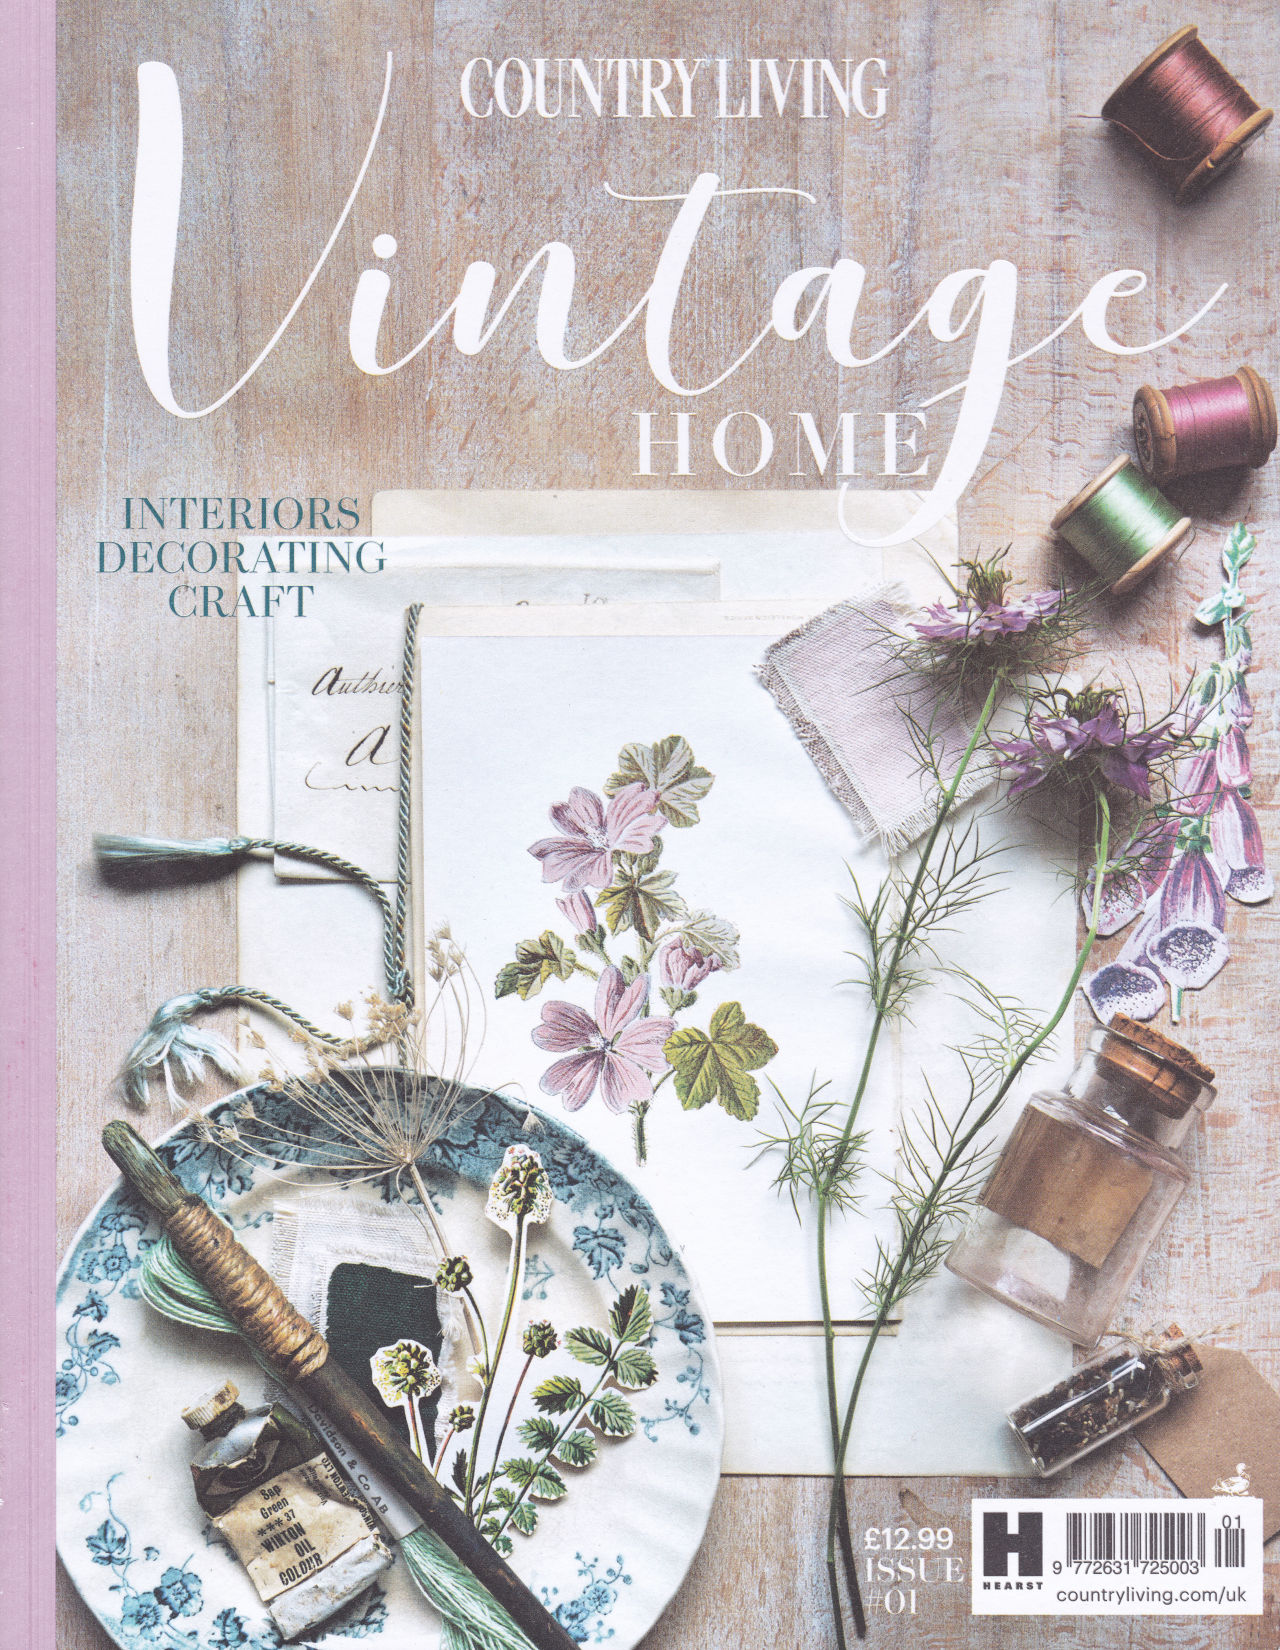 country living vintage home cover 01web